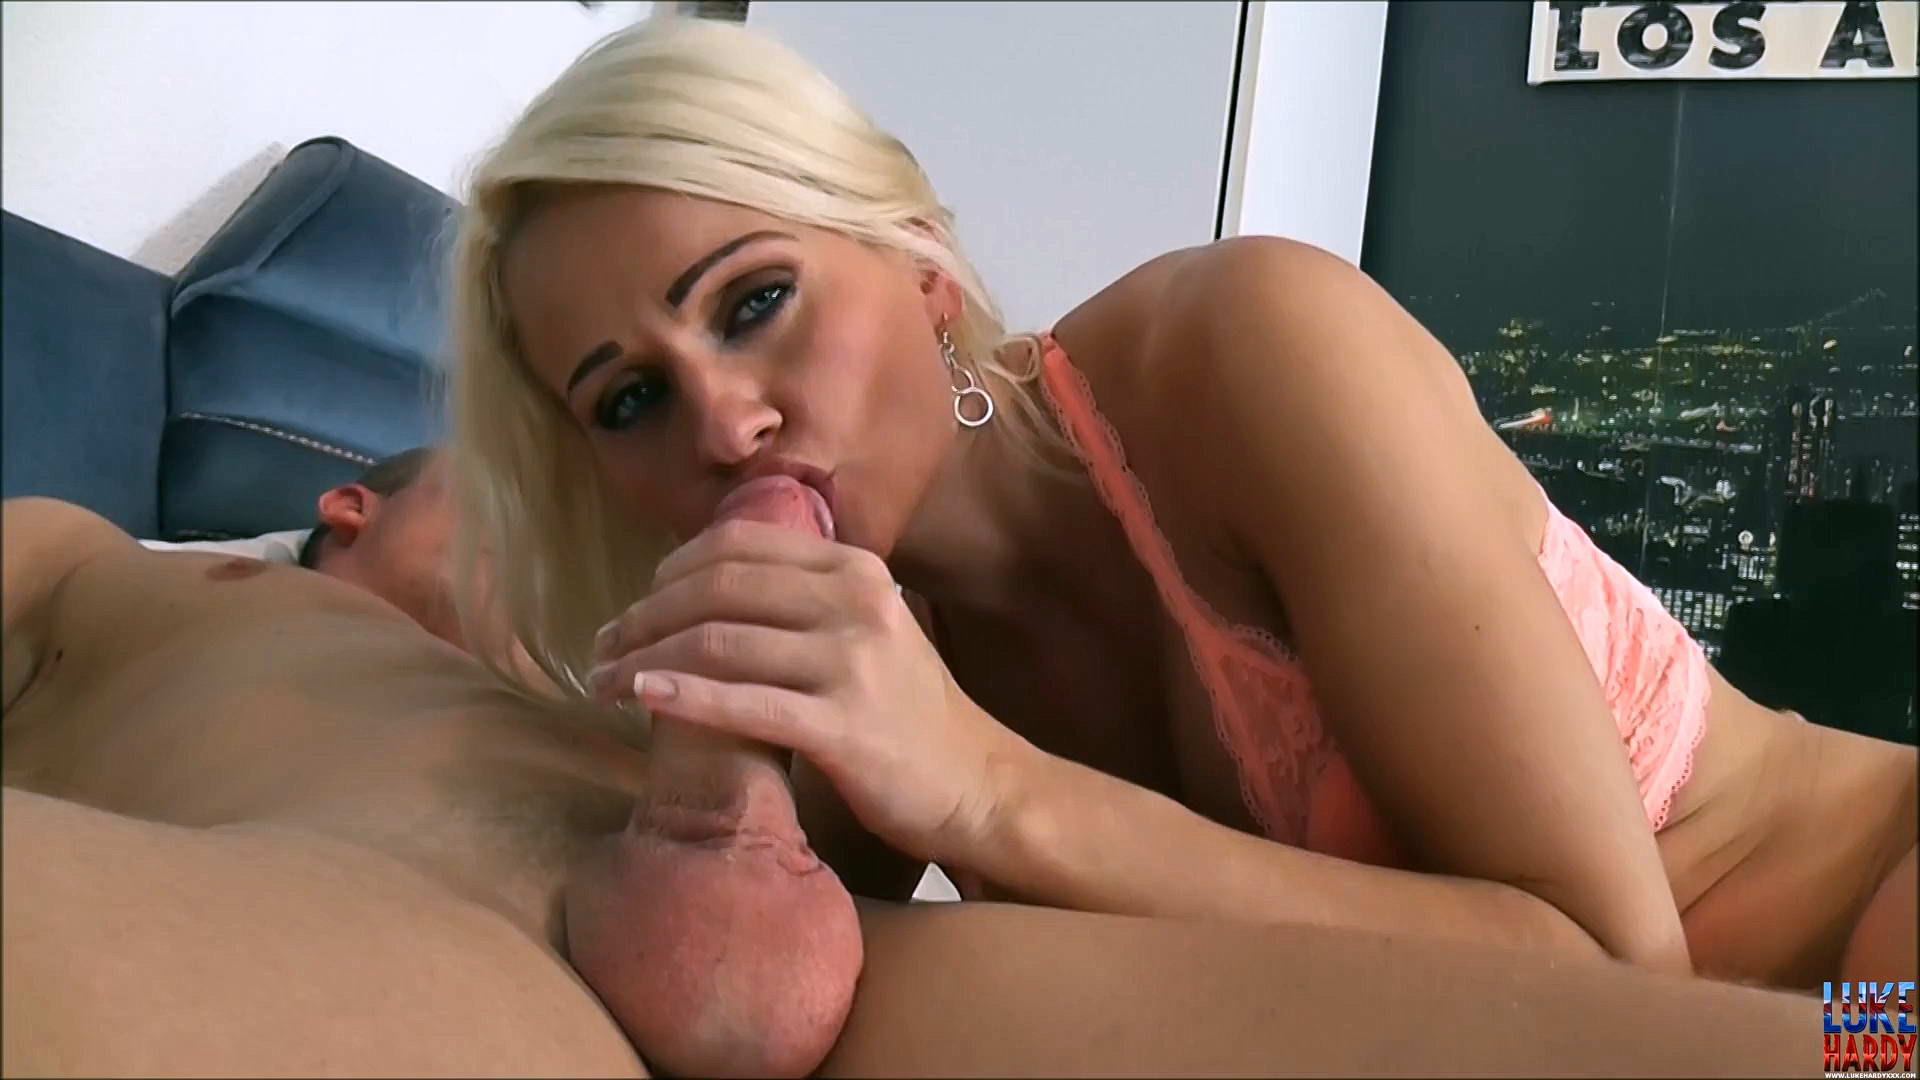 I take Cindy on me bed, gettin her wet n ready for a thorough poundin. She gets horny as sin after her tongue, mouth and hands gimme the once ovah. Cindy wants a pony ride so she gets on top and drains my dick of precum. Cindy